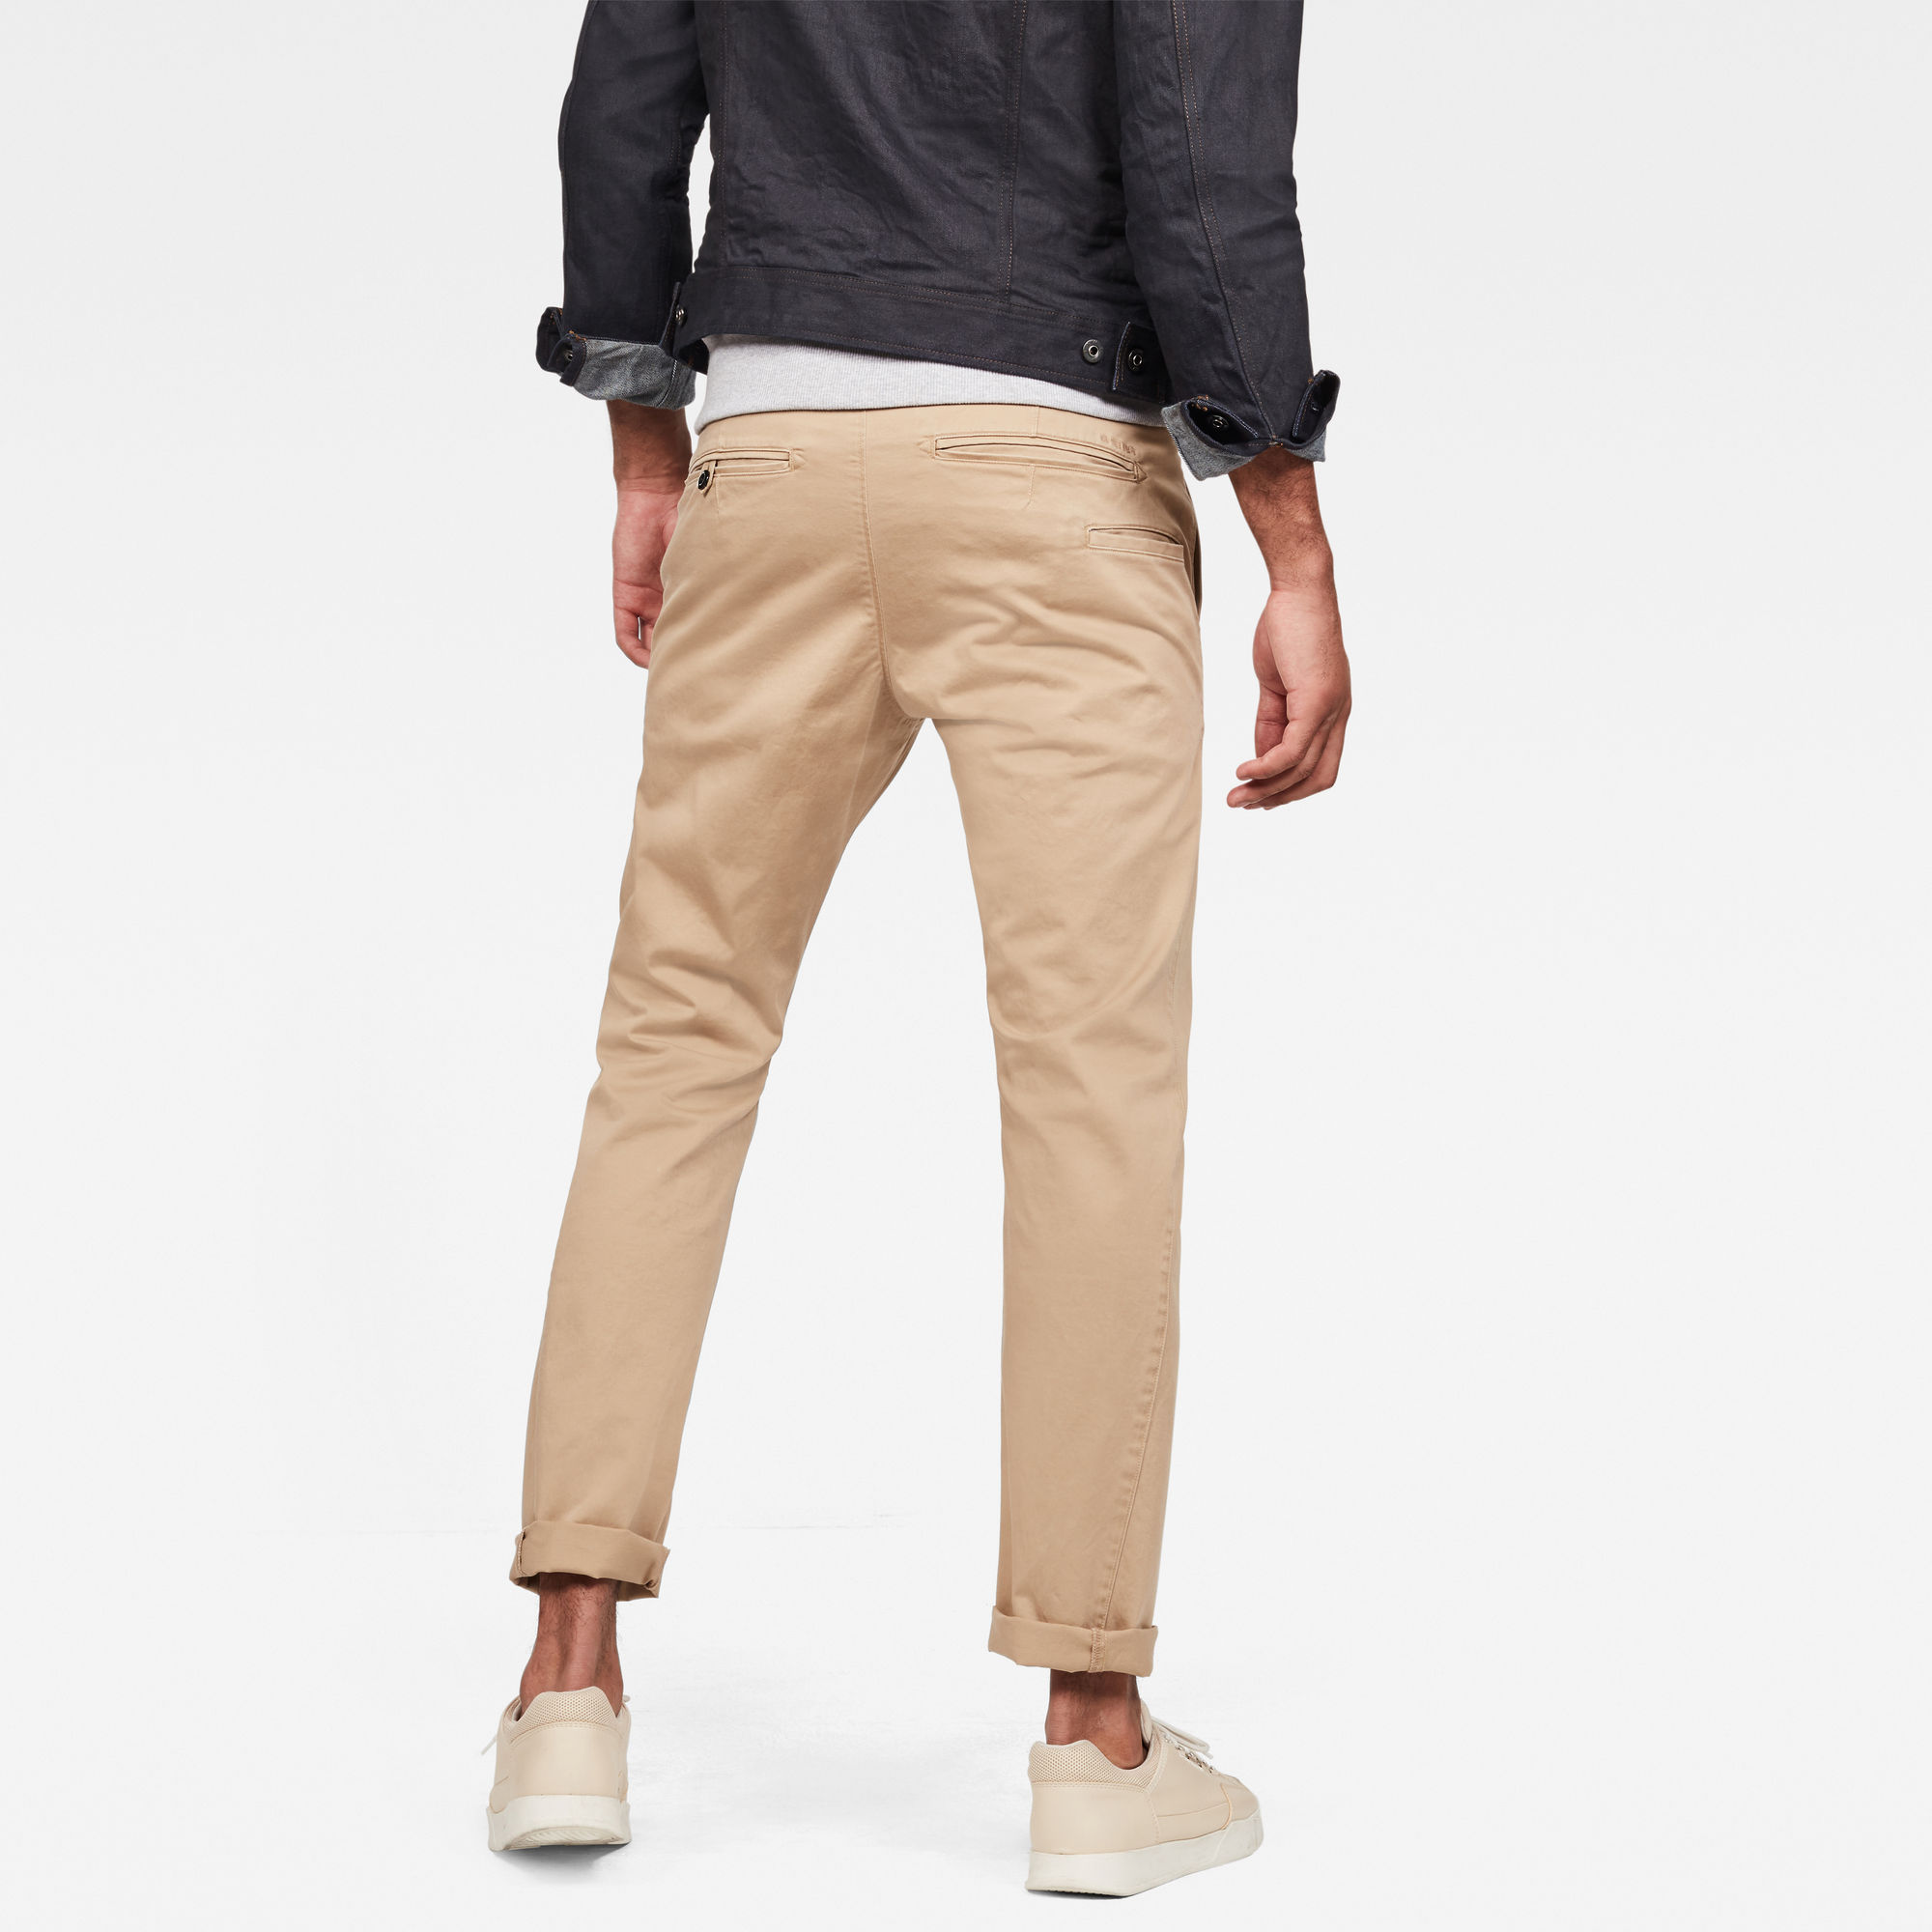 G-Star RAW Vetar Slim Chino